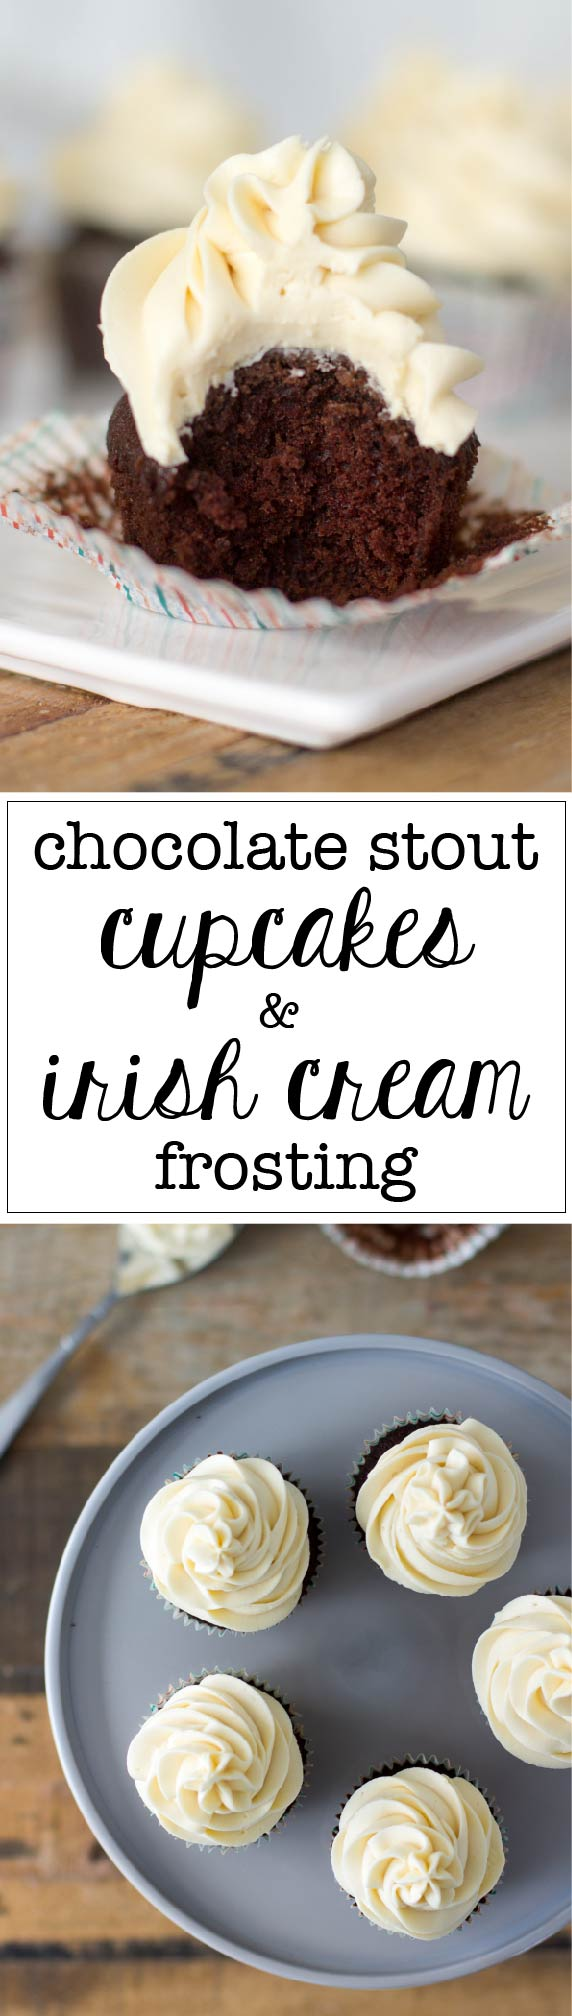 Moist, delicious chocolate stout cupcakes with the perfect Irish cream frosting.